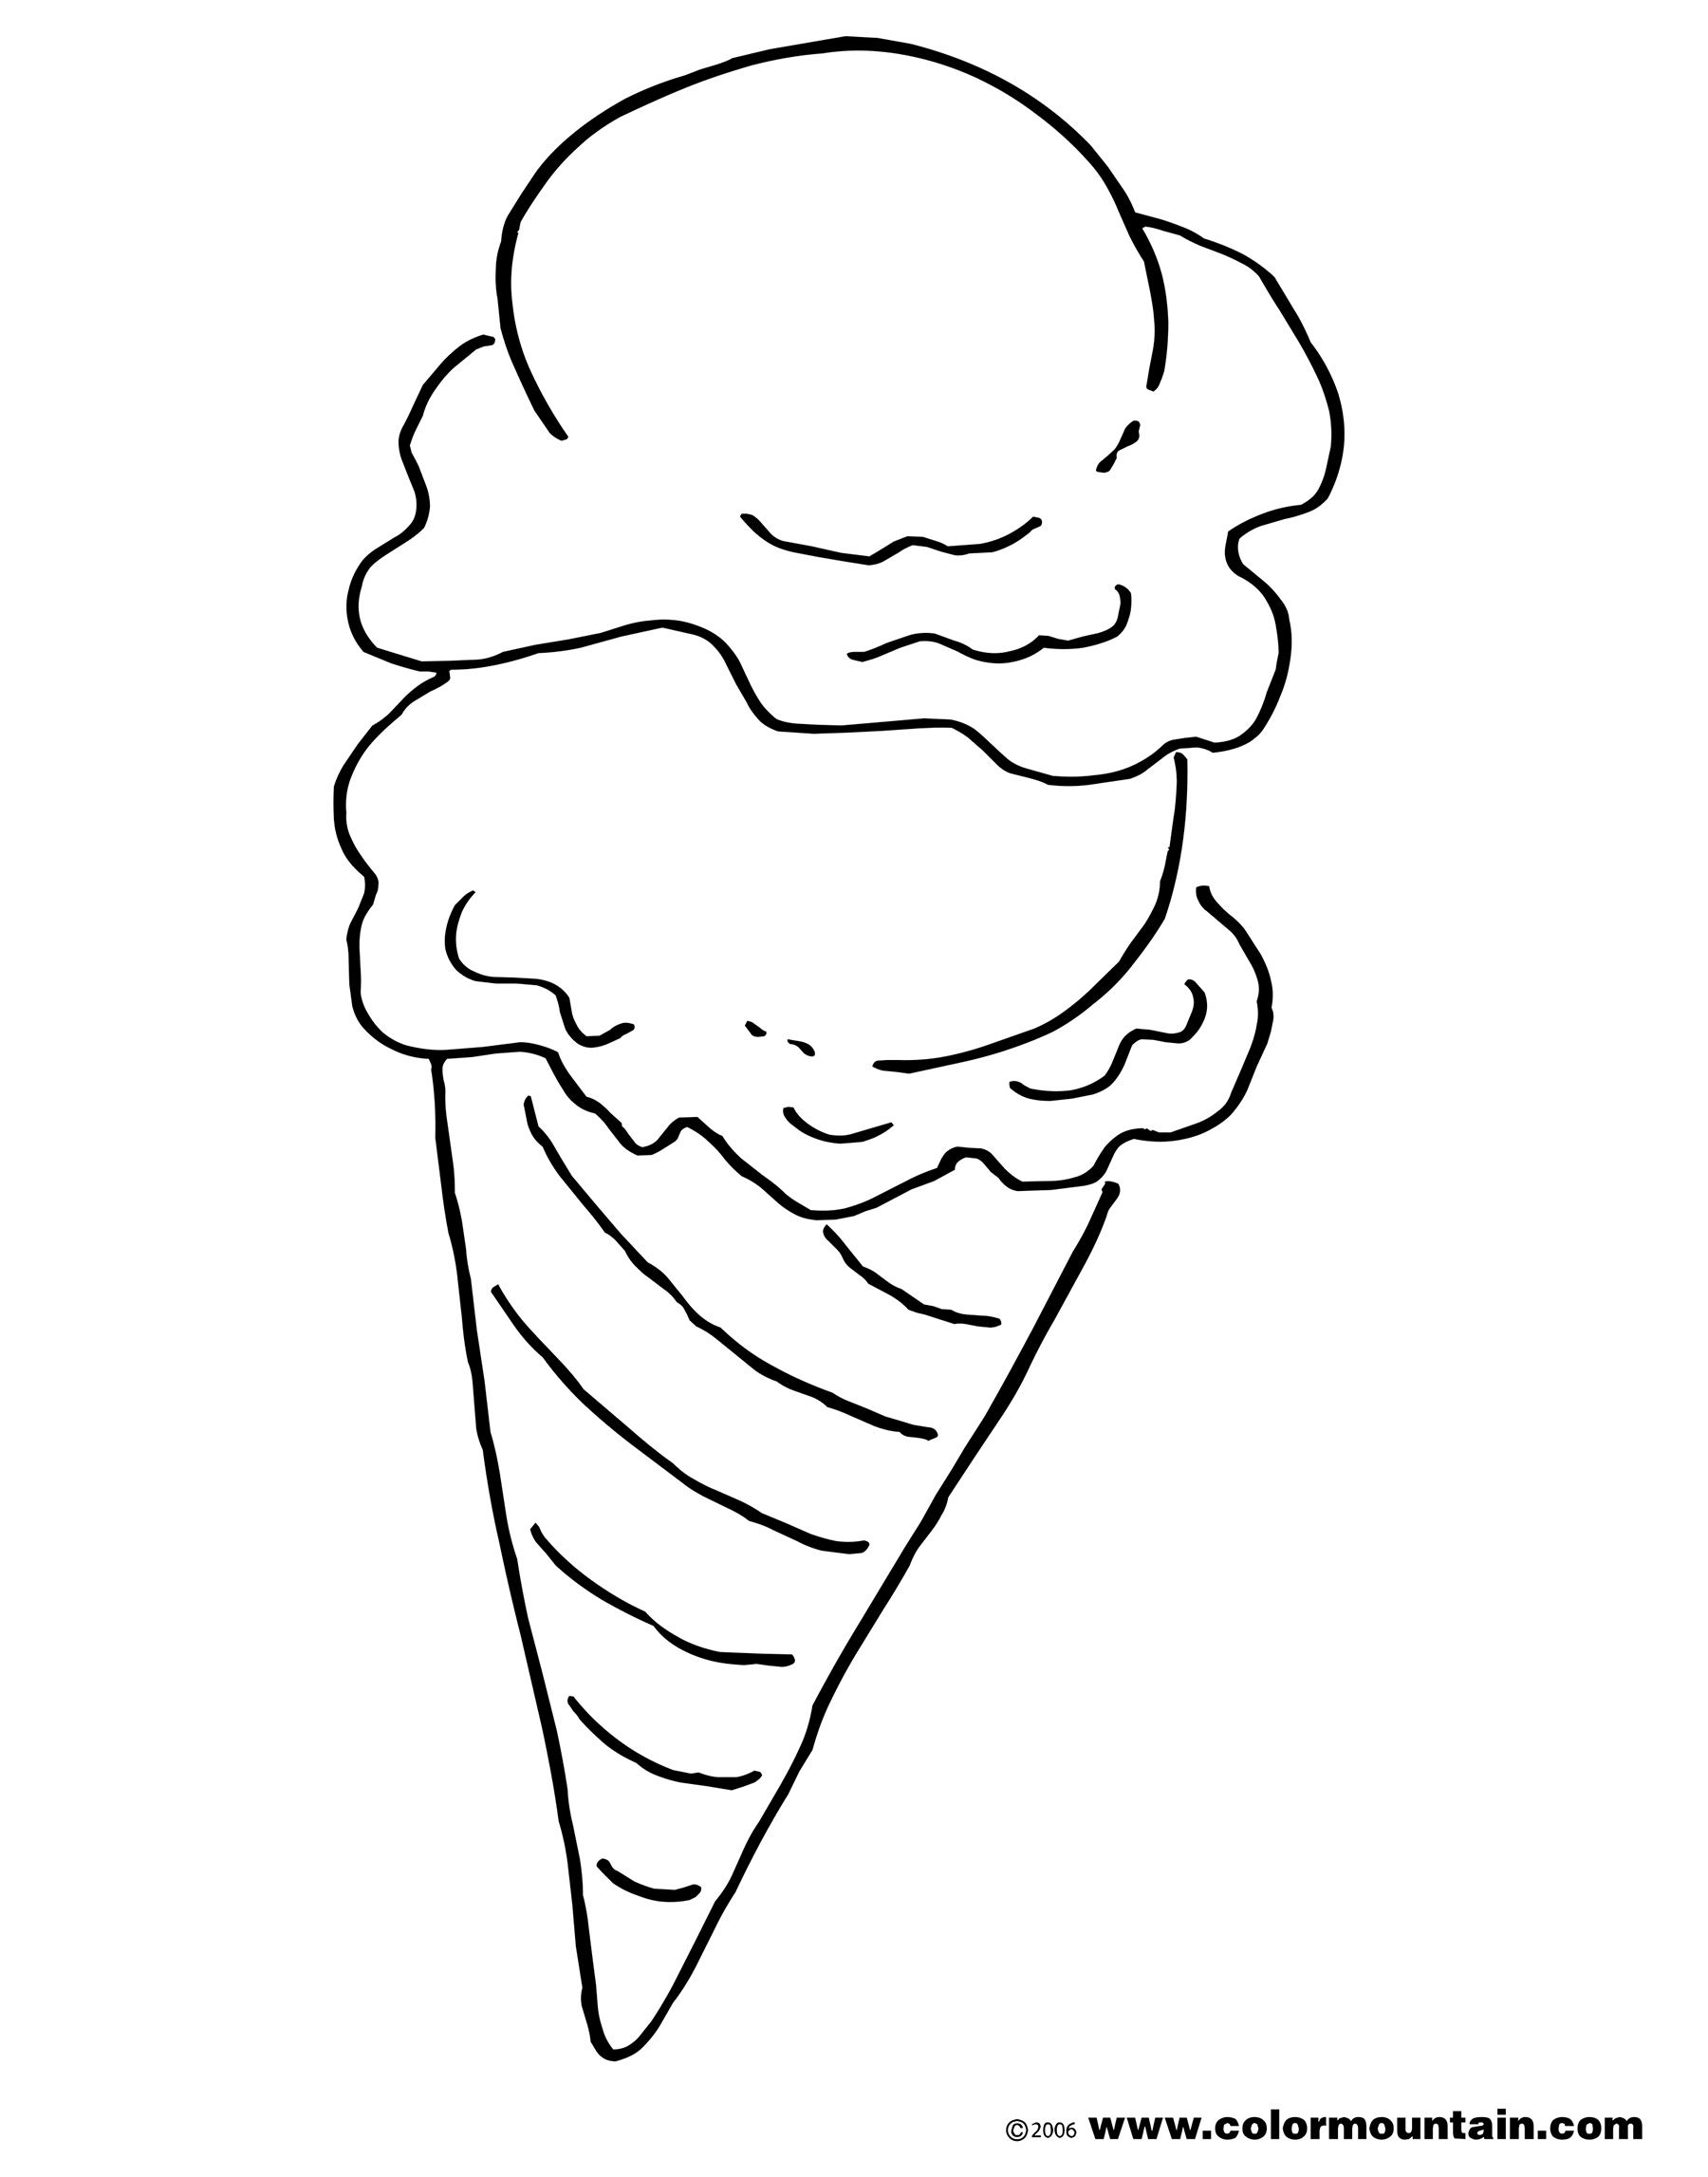 Ice Cream Cone Coloring Pages Free Coloring Pages Ice Cream Coloring Pages Coloring Pages Free Coloring Pages